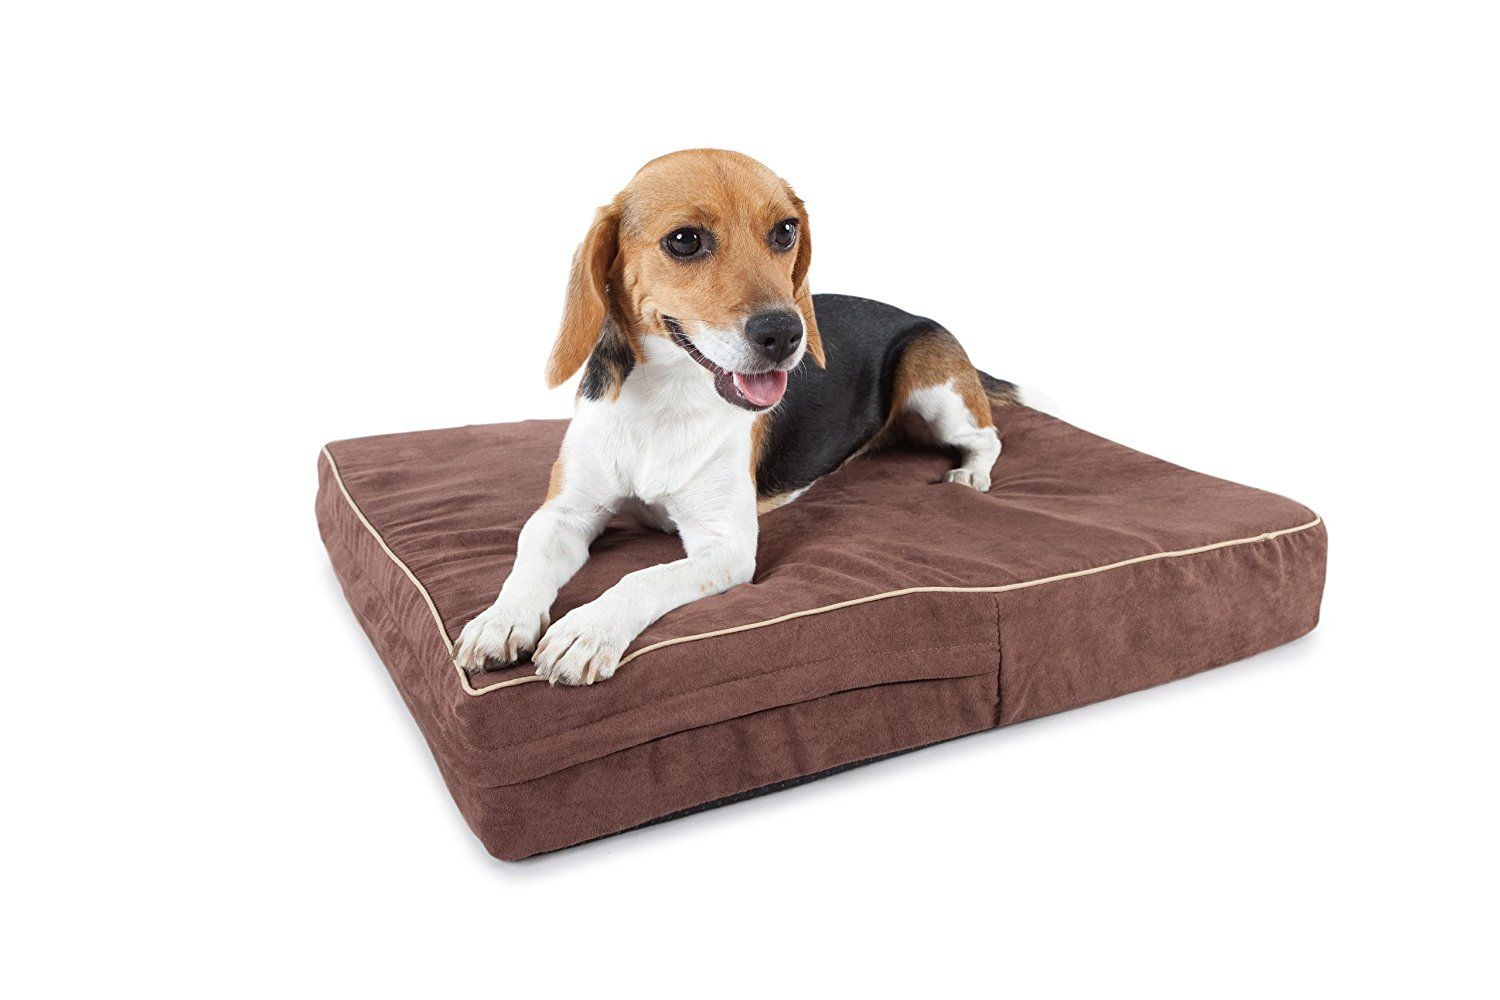 Small Medium Large And Extra Large Orthopedic 4 Pound Memory Foam